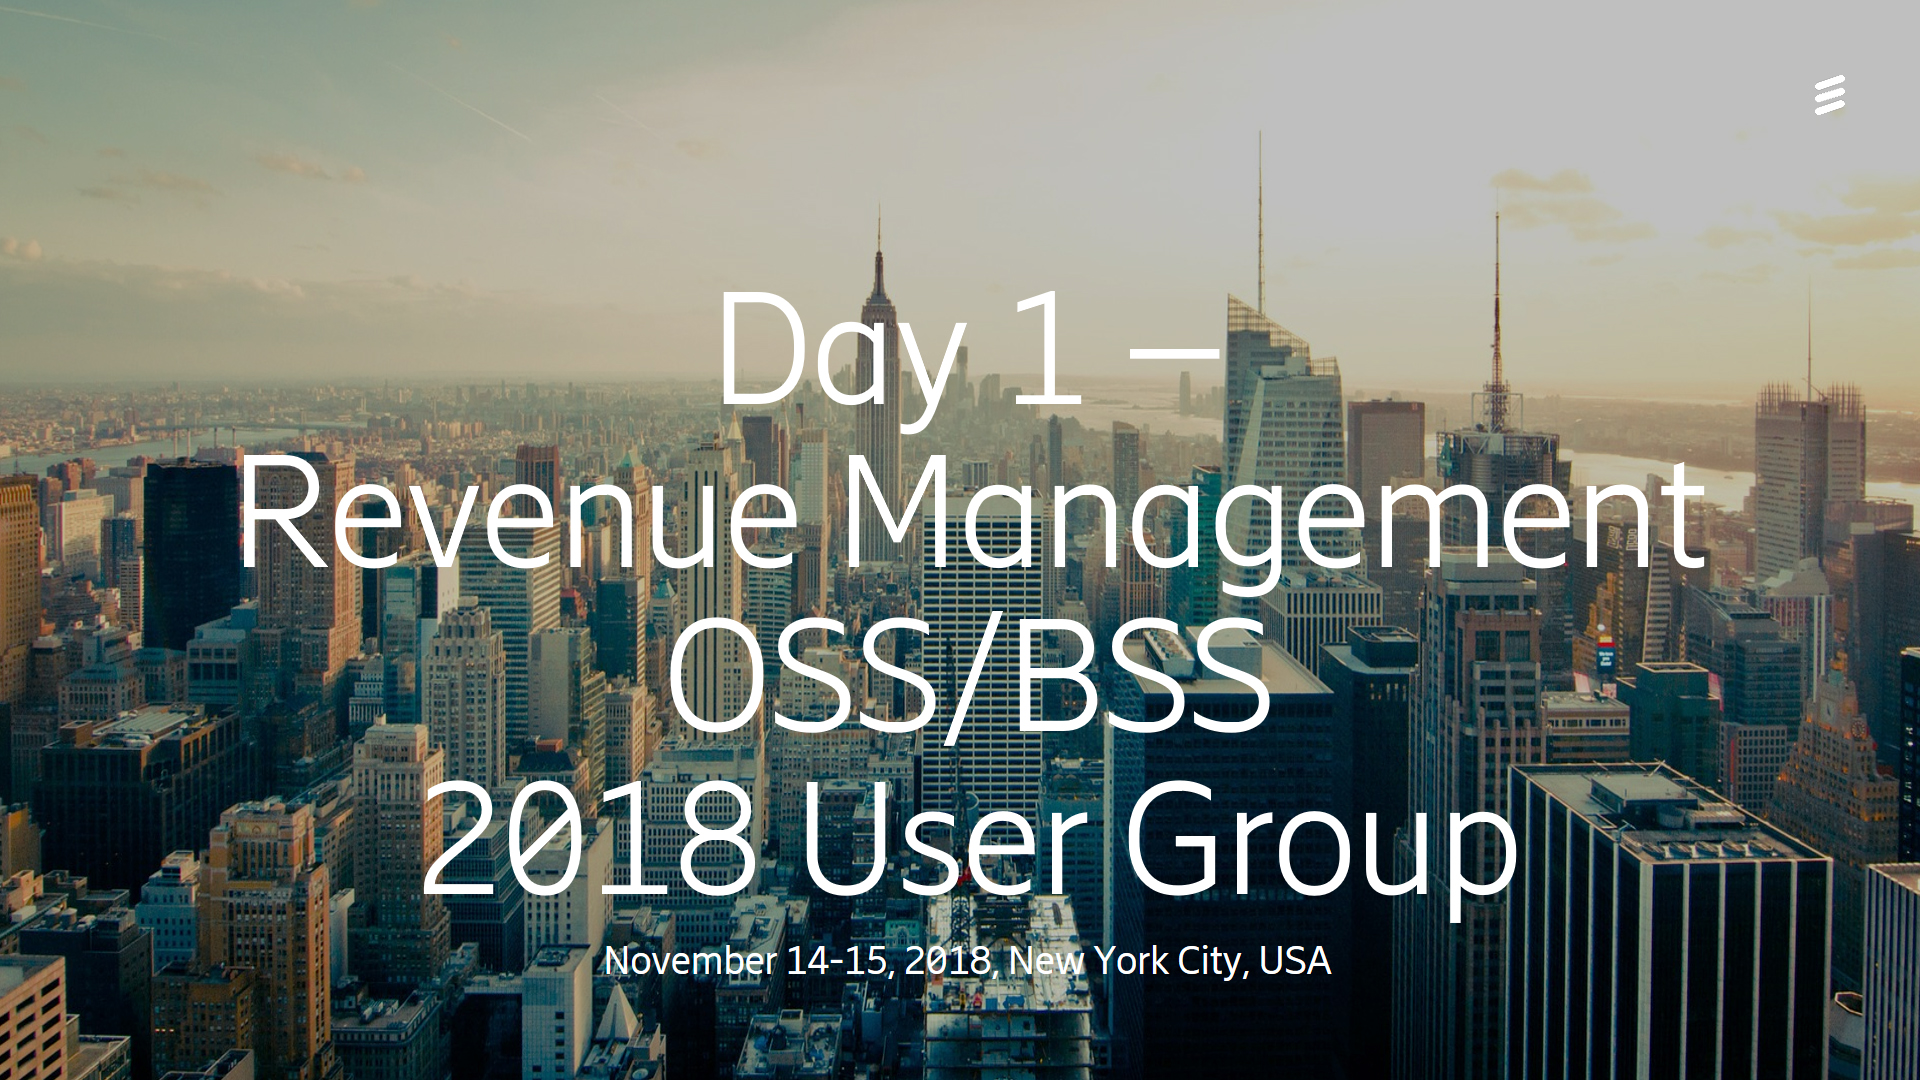 Day 1 Revenue Management - OSS/BSS User Group 2018